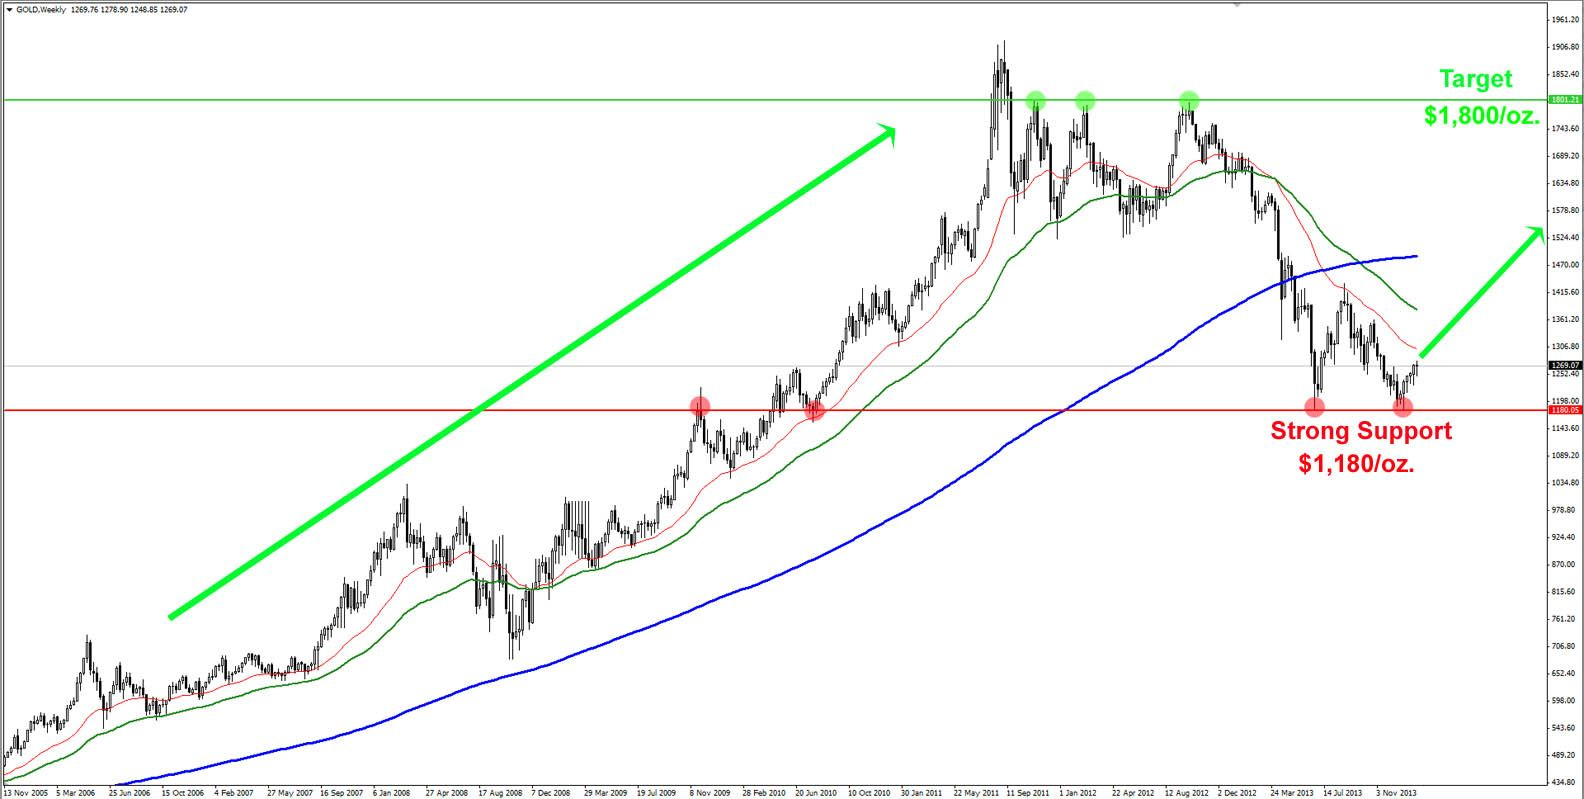 gold technical chart 2014 prediction